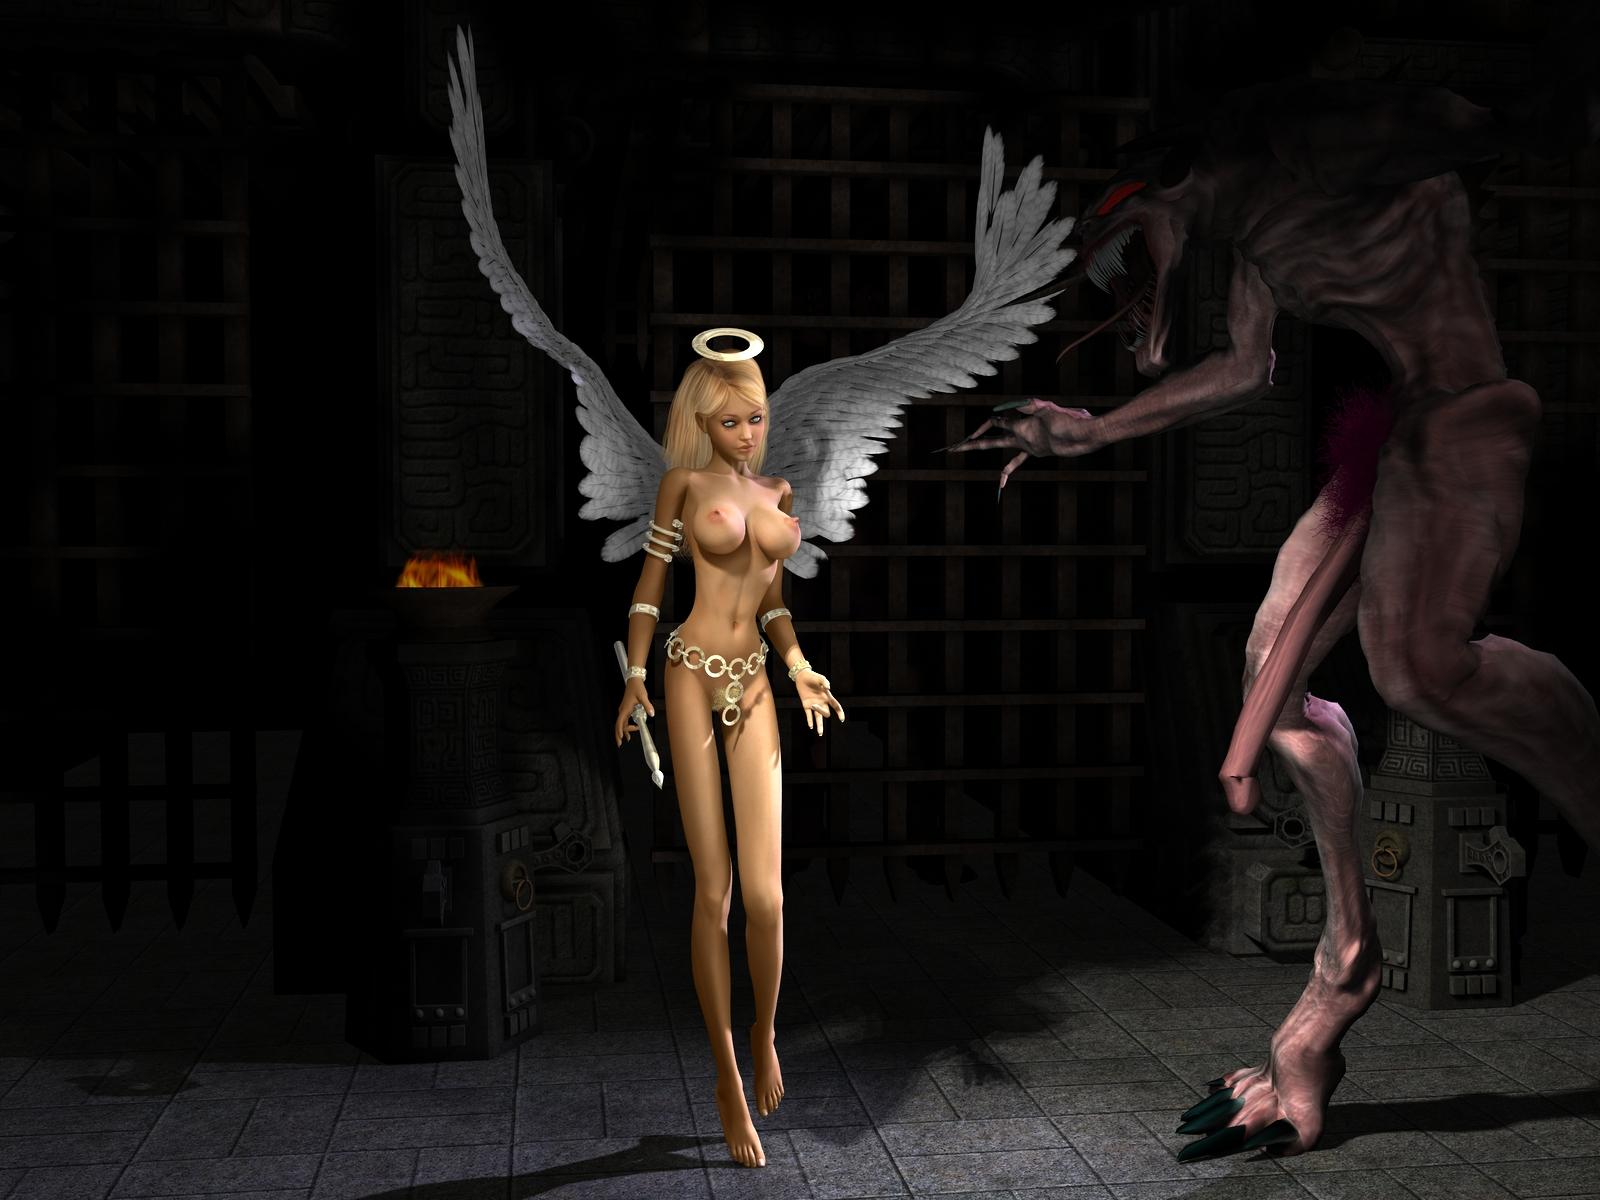 Fantasy 3d angele model nude nude image